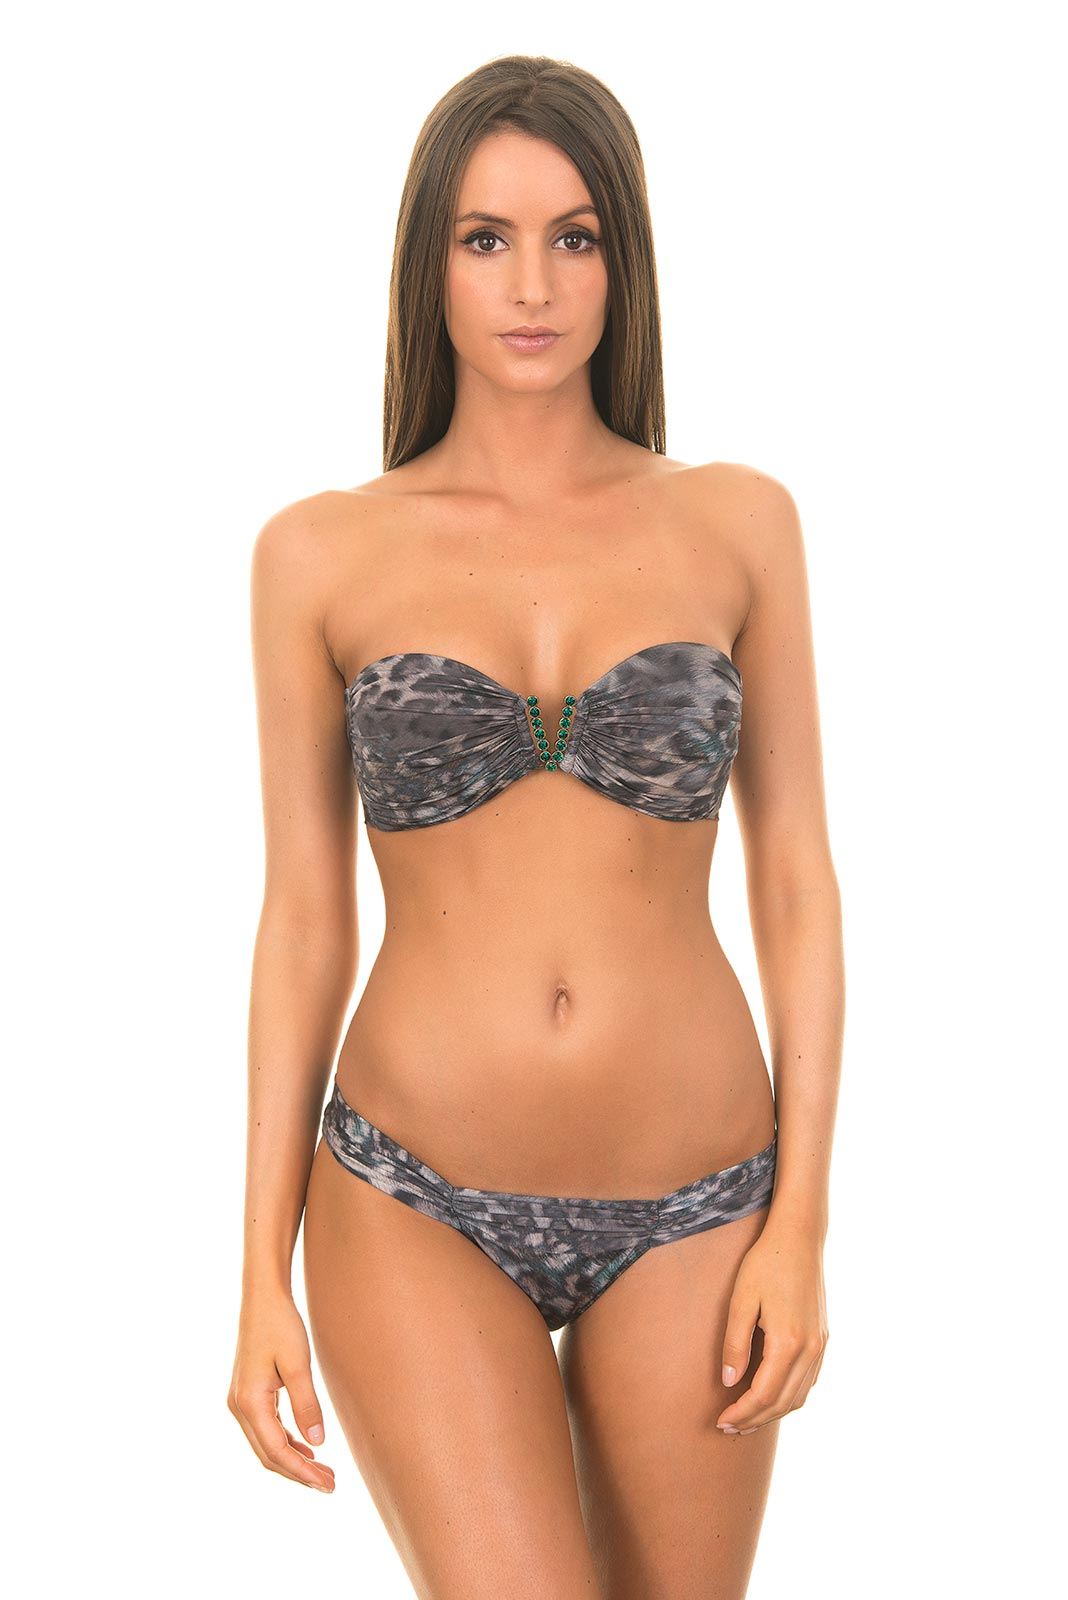 Swimwear store in London Canada online carrying sexy bikini, tankini, bathing suits, from designer Seafolly, Vix, Agua Bendita, miracle suit, Beach bunny.